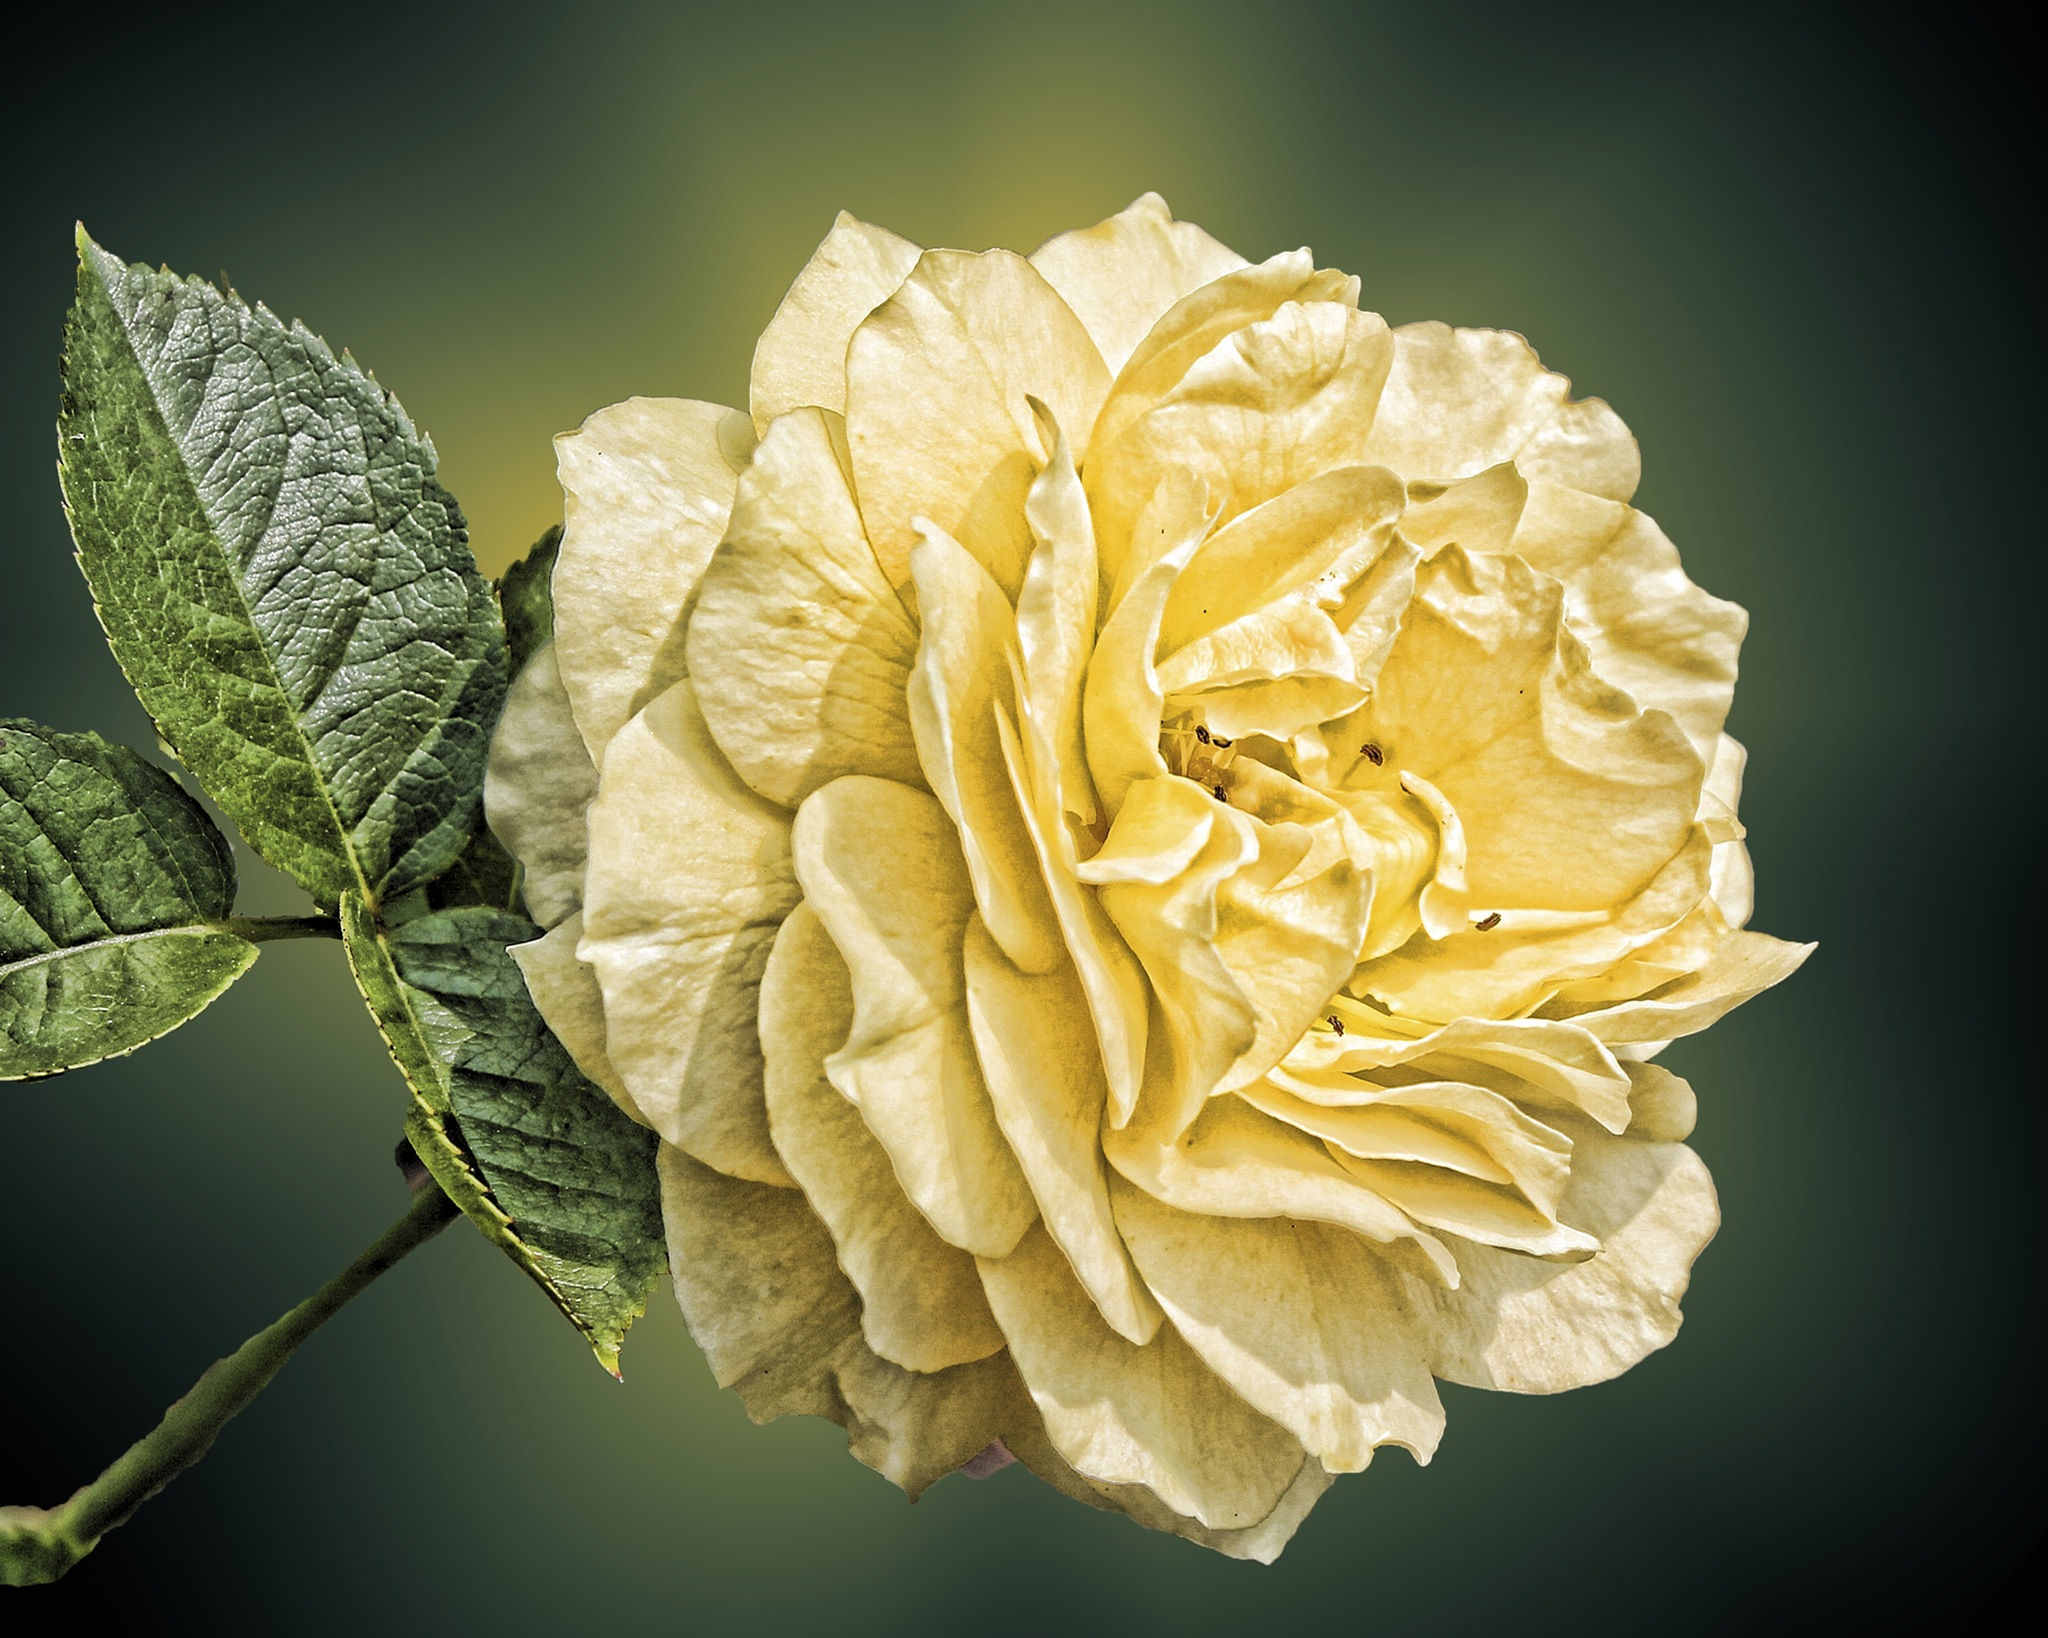 Yellow Rose by kconkling